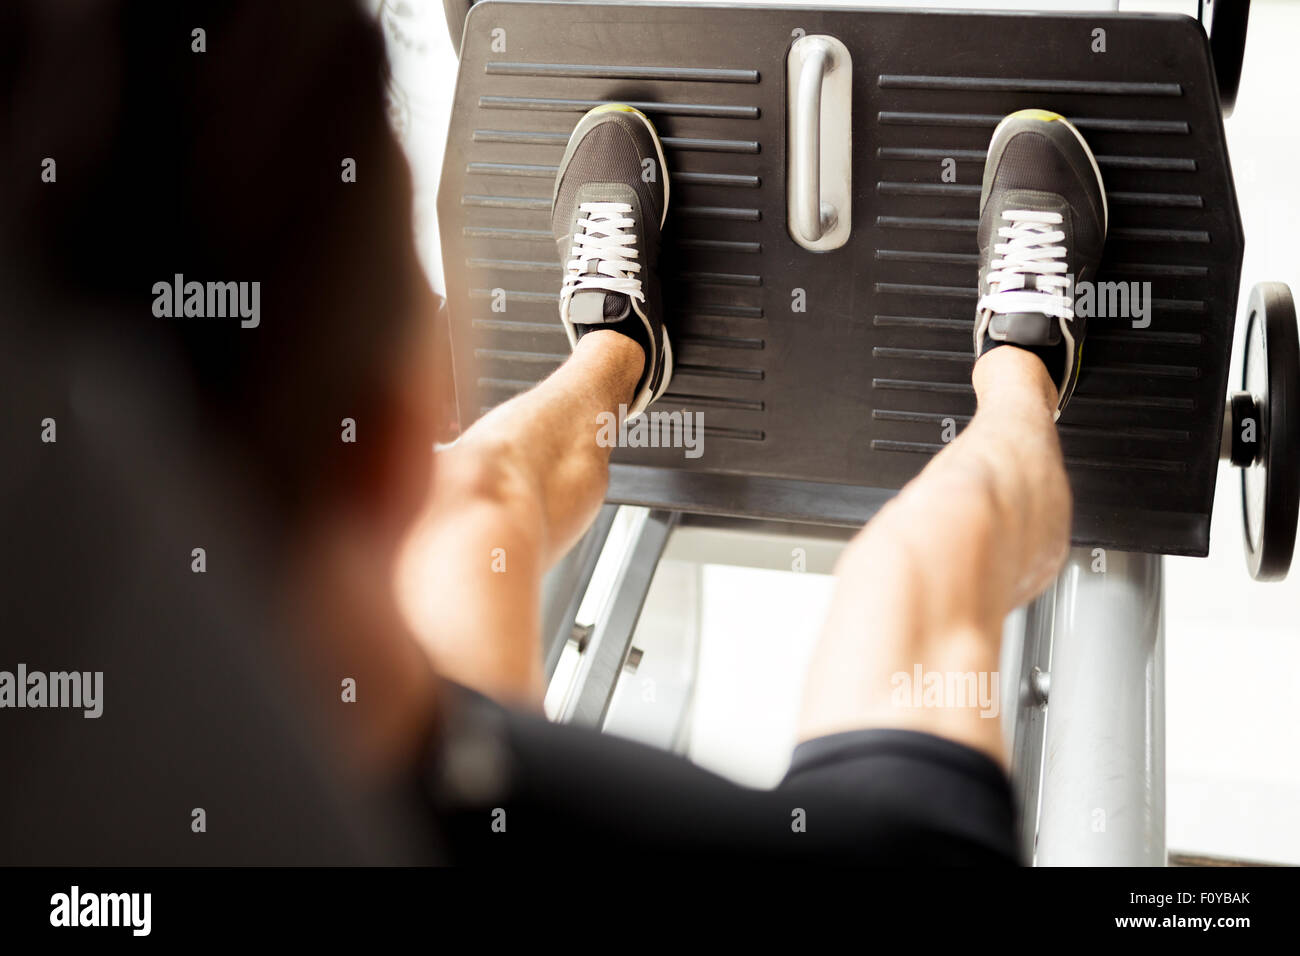 Young male working out in a gym and doing leg exercises - Stock Image